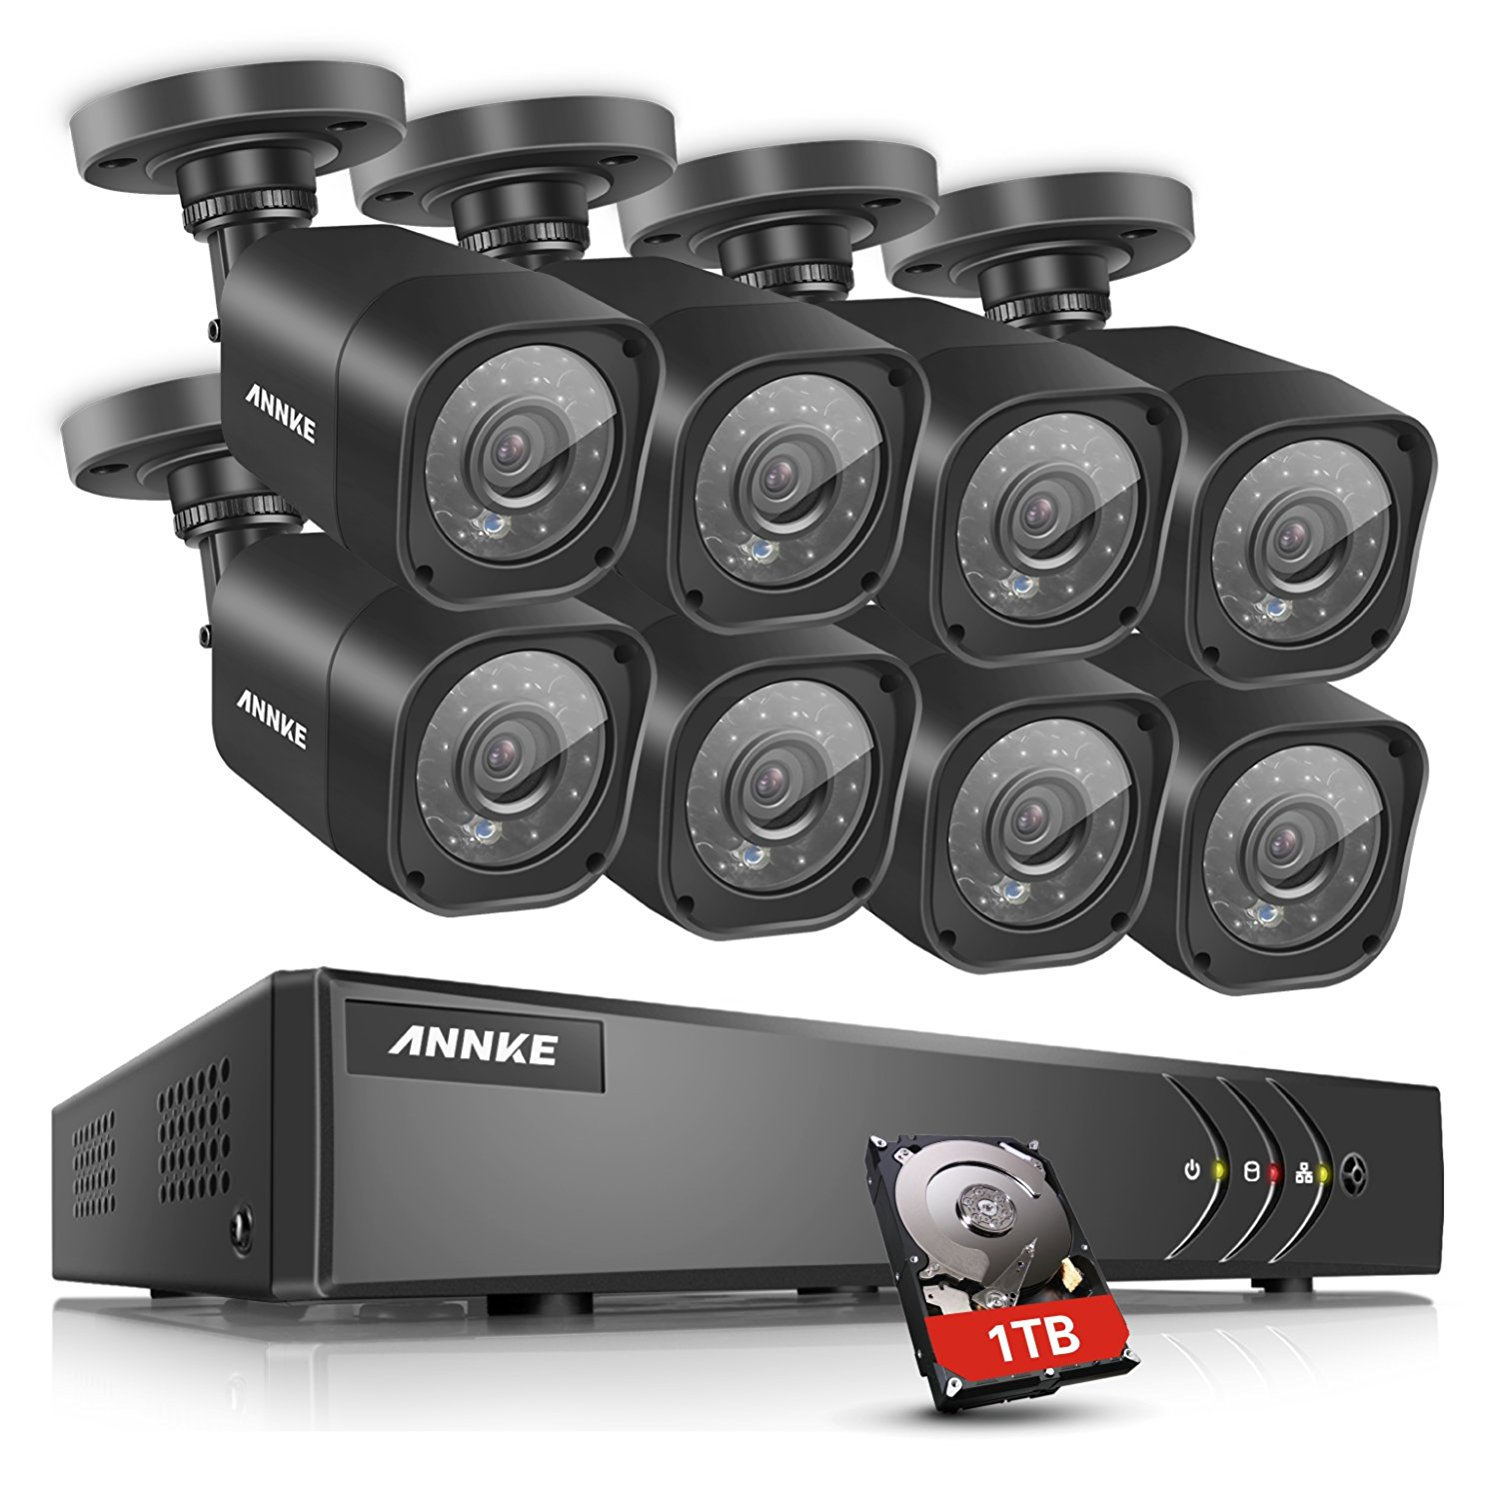 What is the best CCTV system you can get for your home?